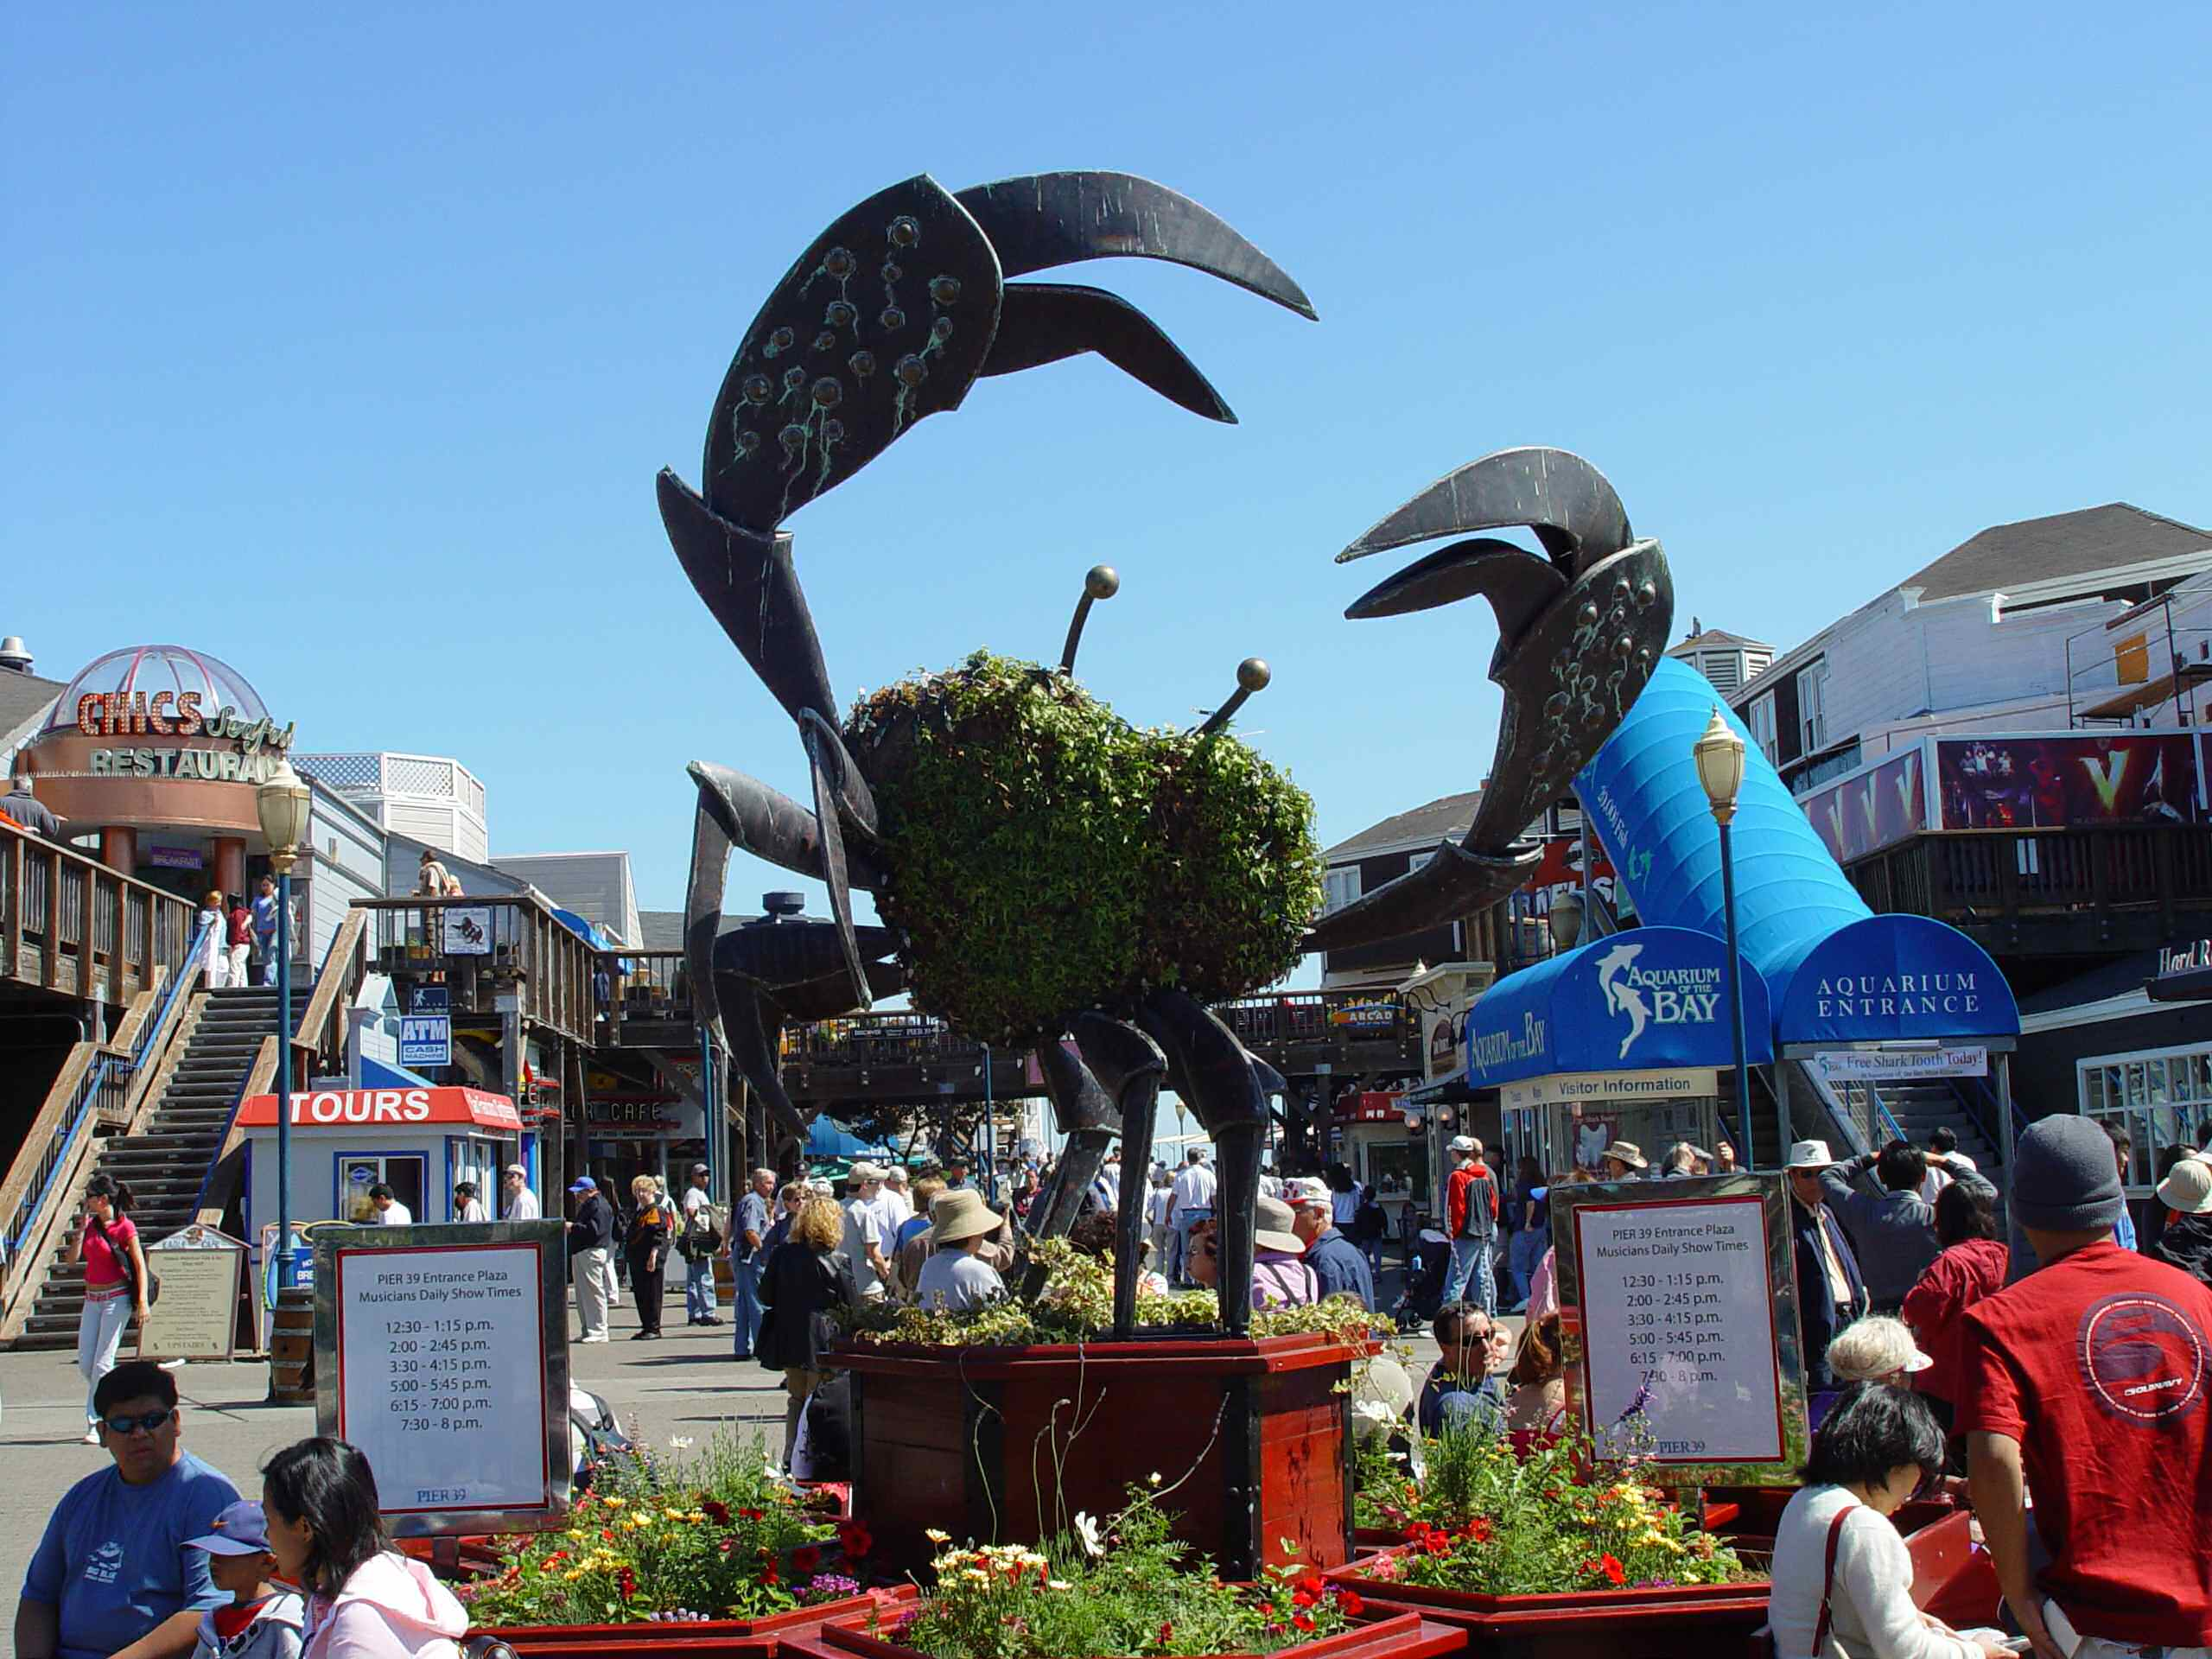 Fisherman 39 s wharf in san francisco thousand wonders - San francisco tourist information office ...